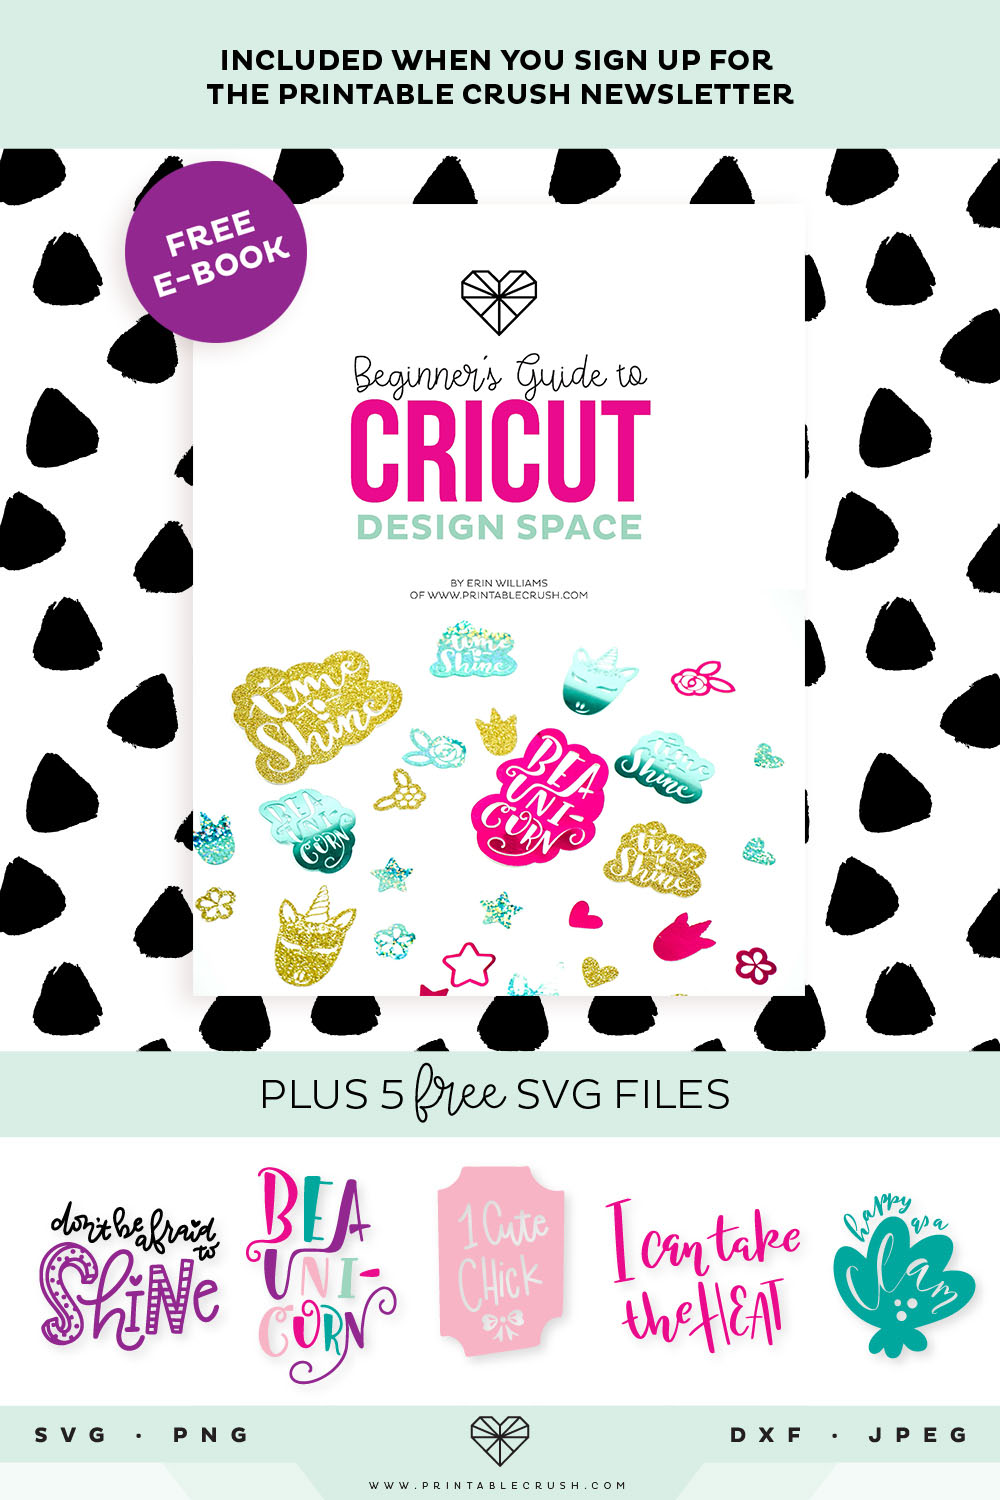 Download The Beginner's Guide to Cricut Design Space - Printable Crush